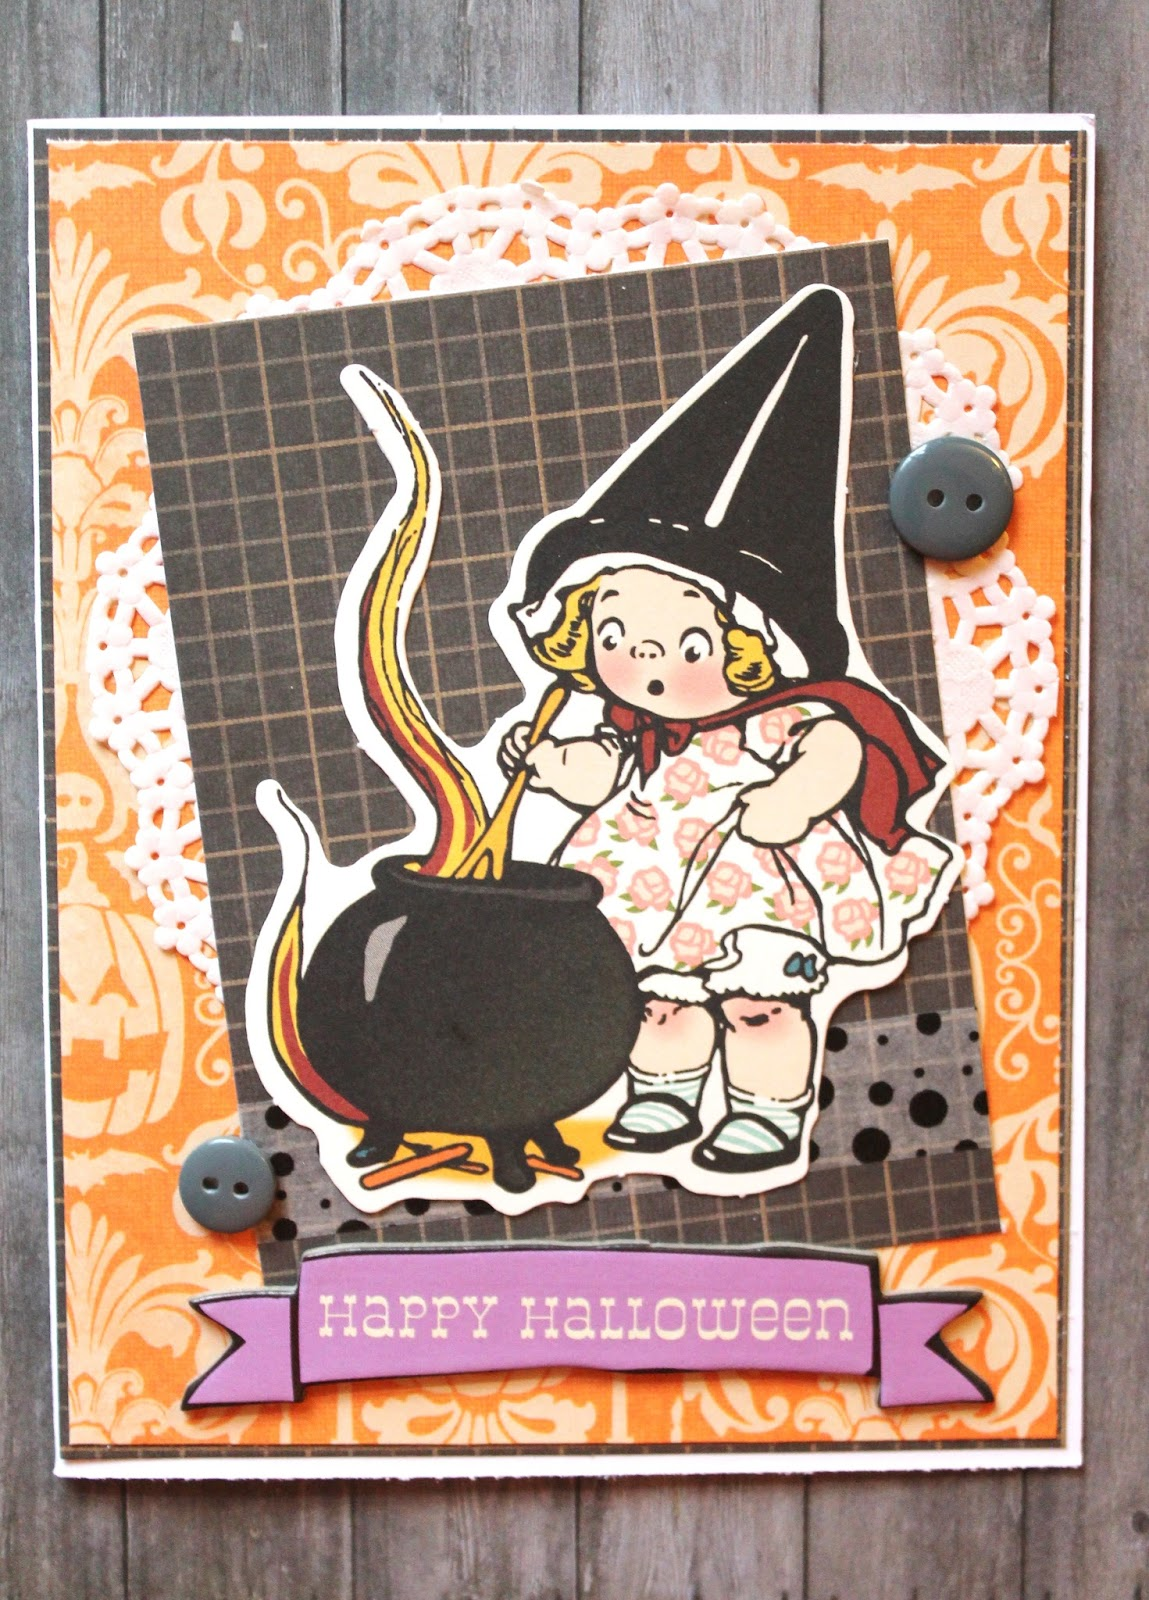 This Was A Really Fun Card To Make And It Helped Put Me In The Halloween Spirit So Before Rolls Around Some Cute Cards For Your